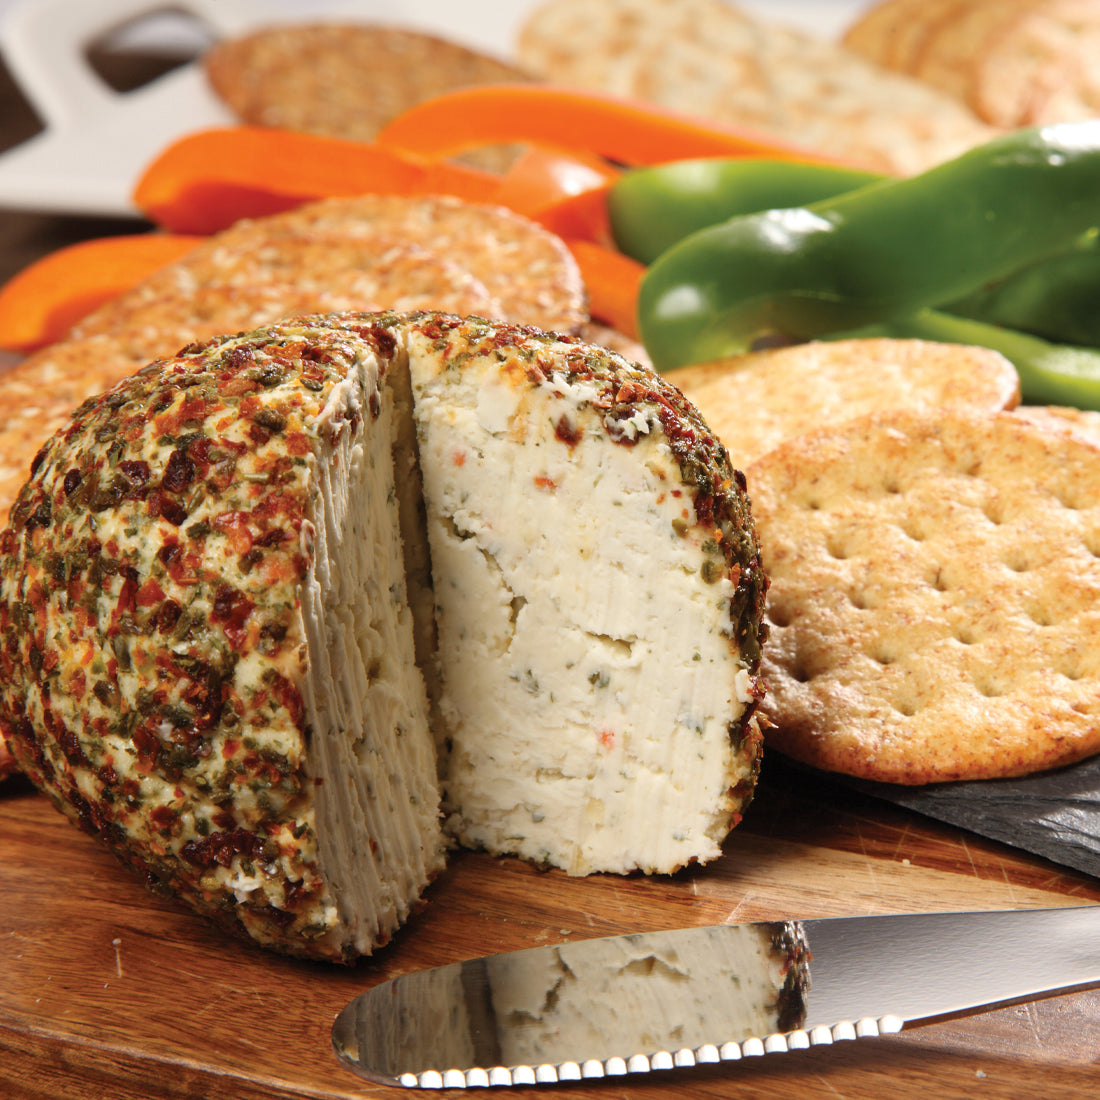 Garden Vegetable Cheeseball with spices and cream cheese served with crackers.